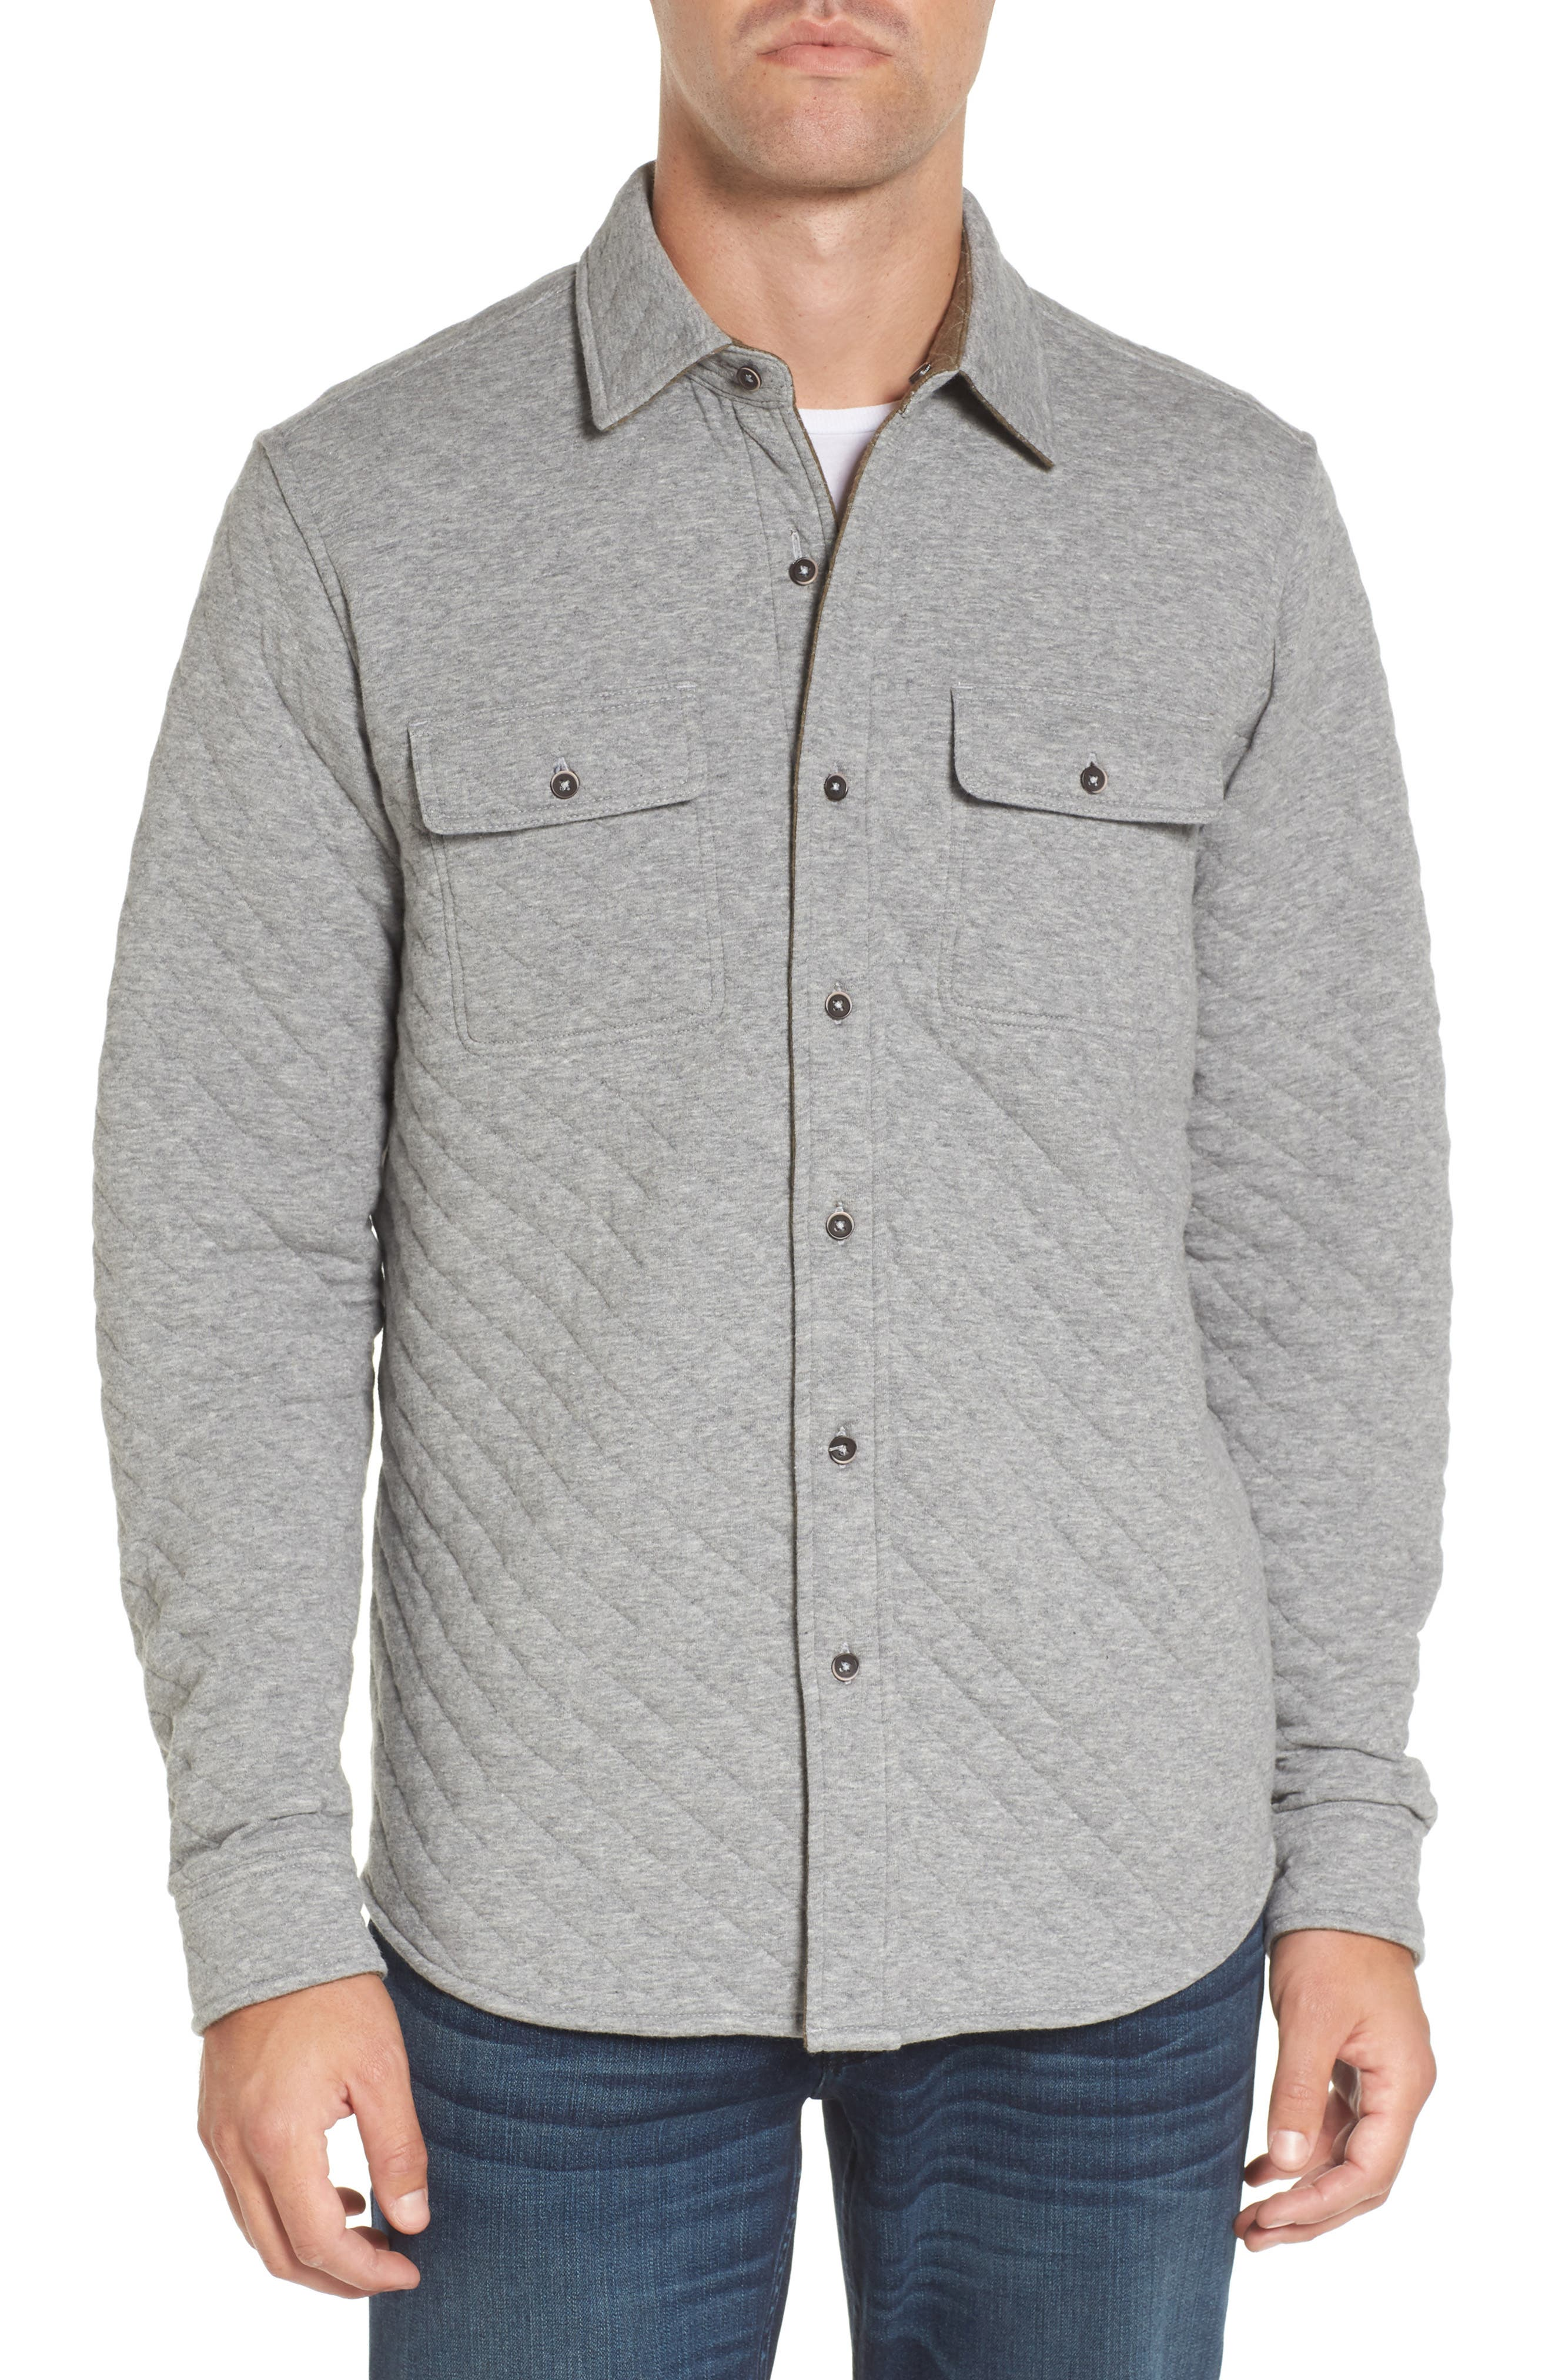 Main Image - Tailor Vintage Reversible Double-Face Quilted Shirt